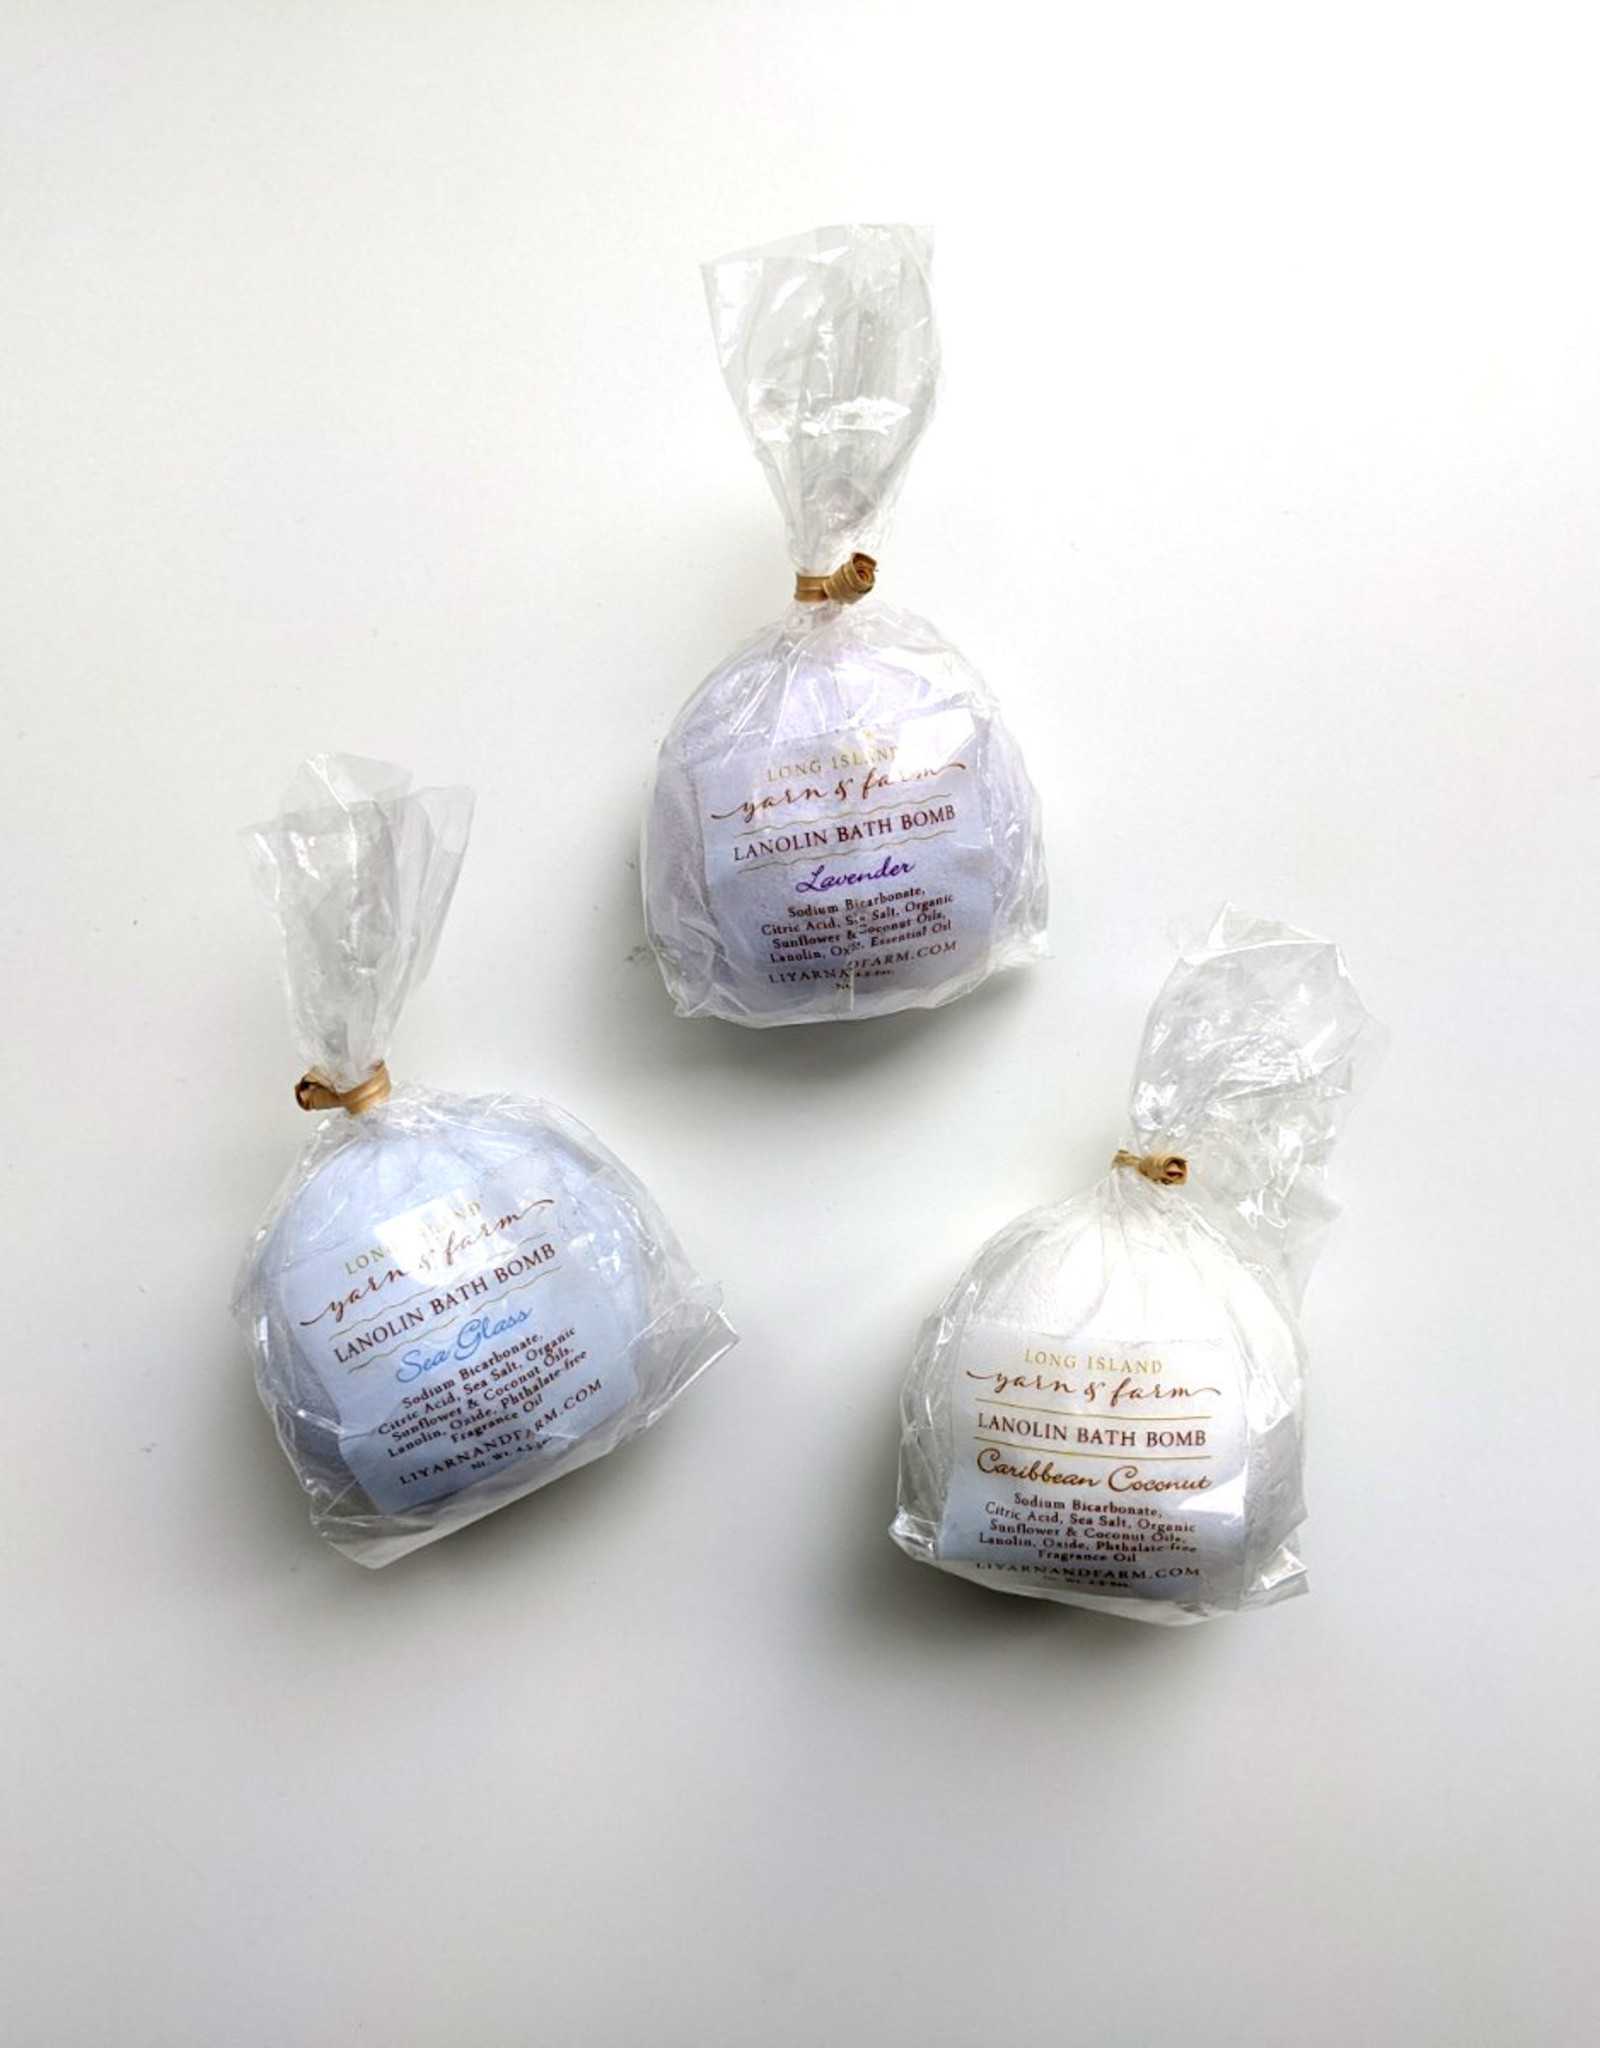 Long Island Livestock Co Shepherdess Lanolin Bath Bomb